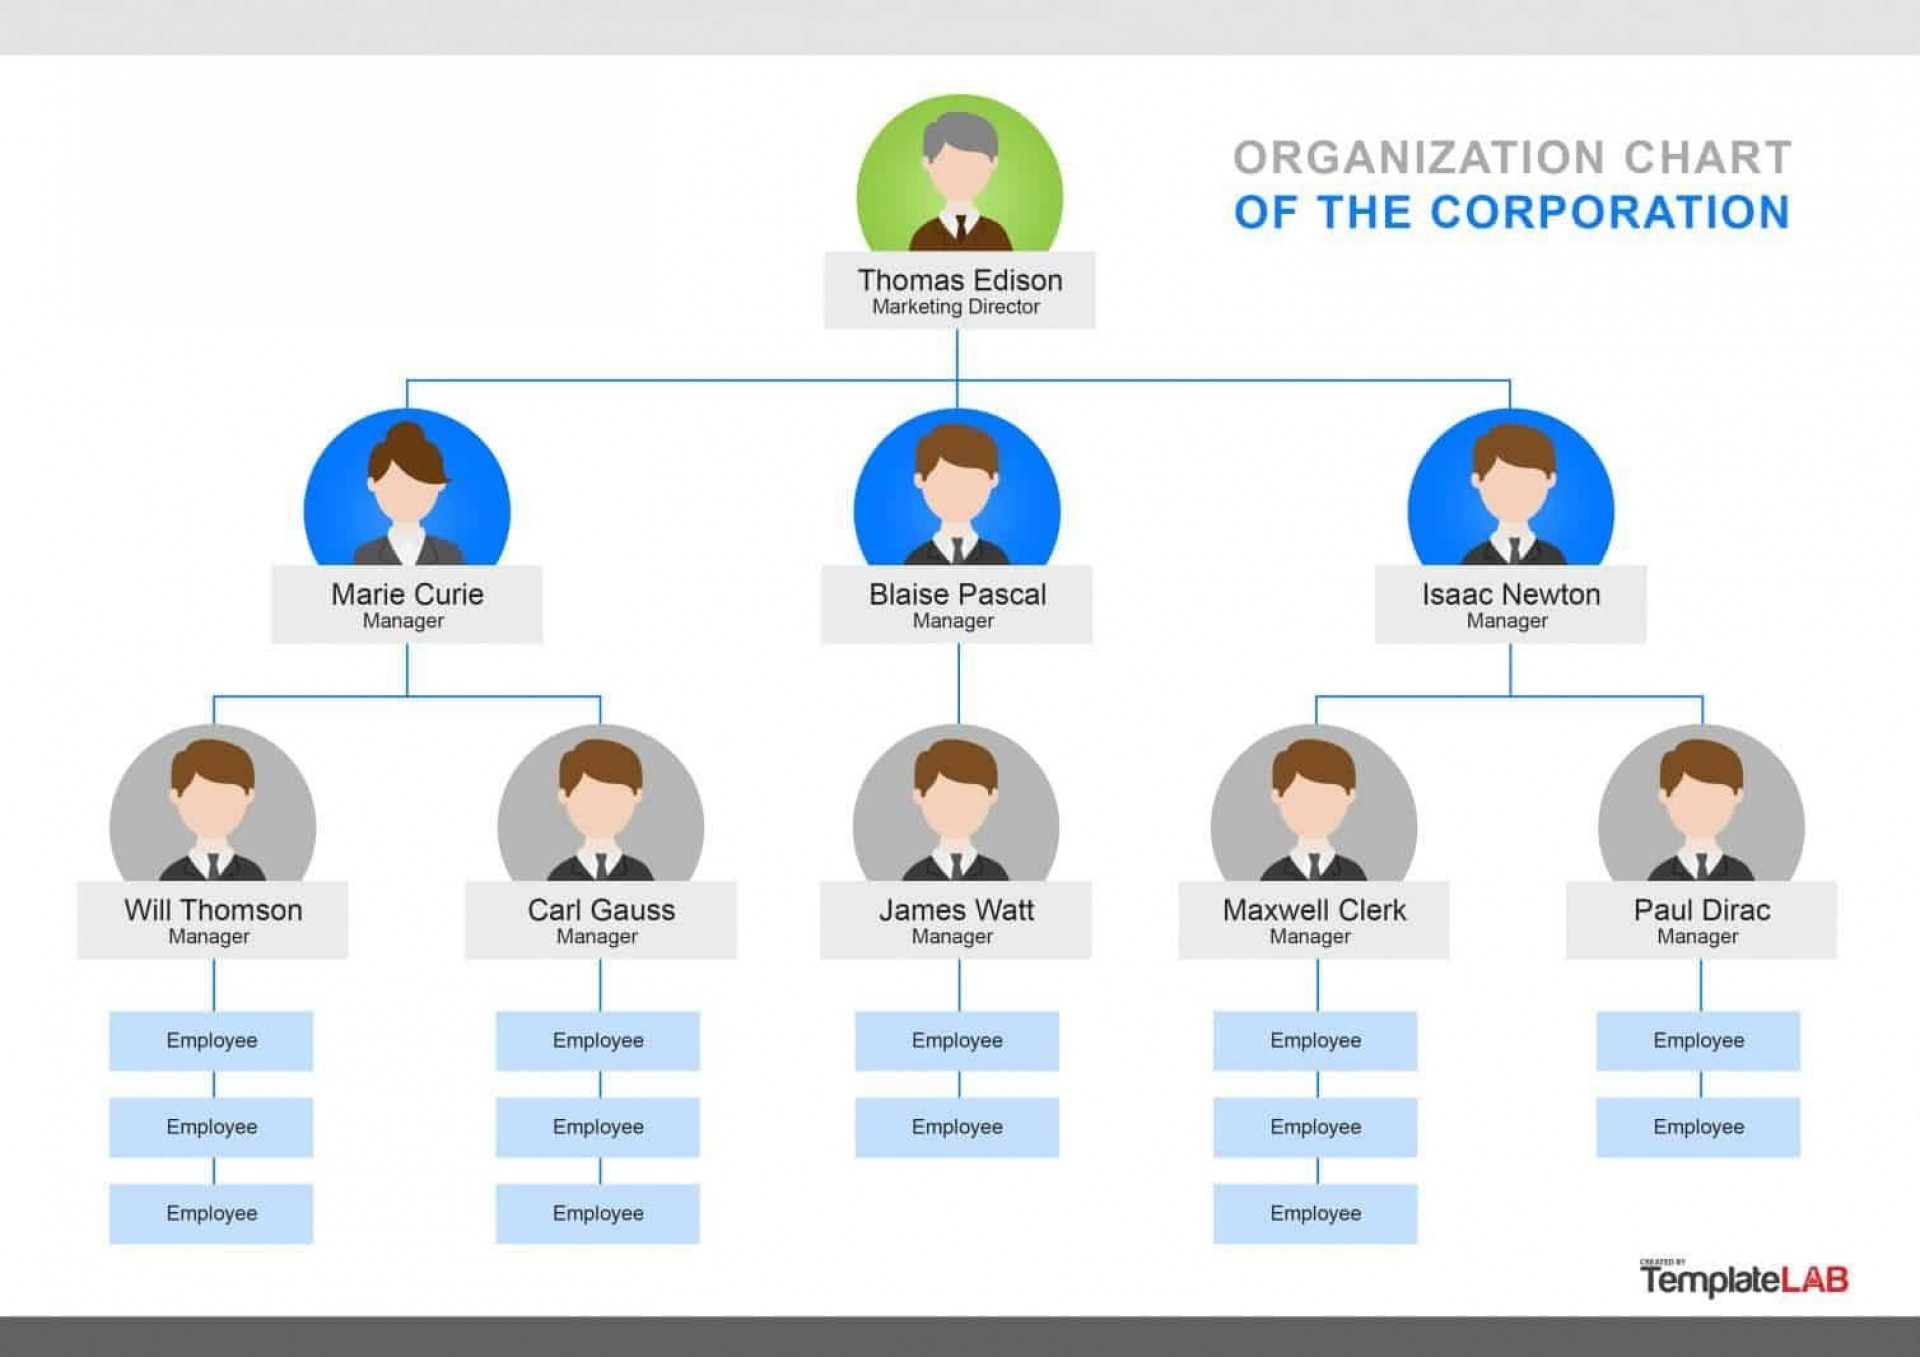 000 Fantastic Organizational Chart Template Excel Idea  Organization Download Org1920